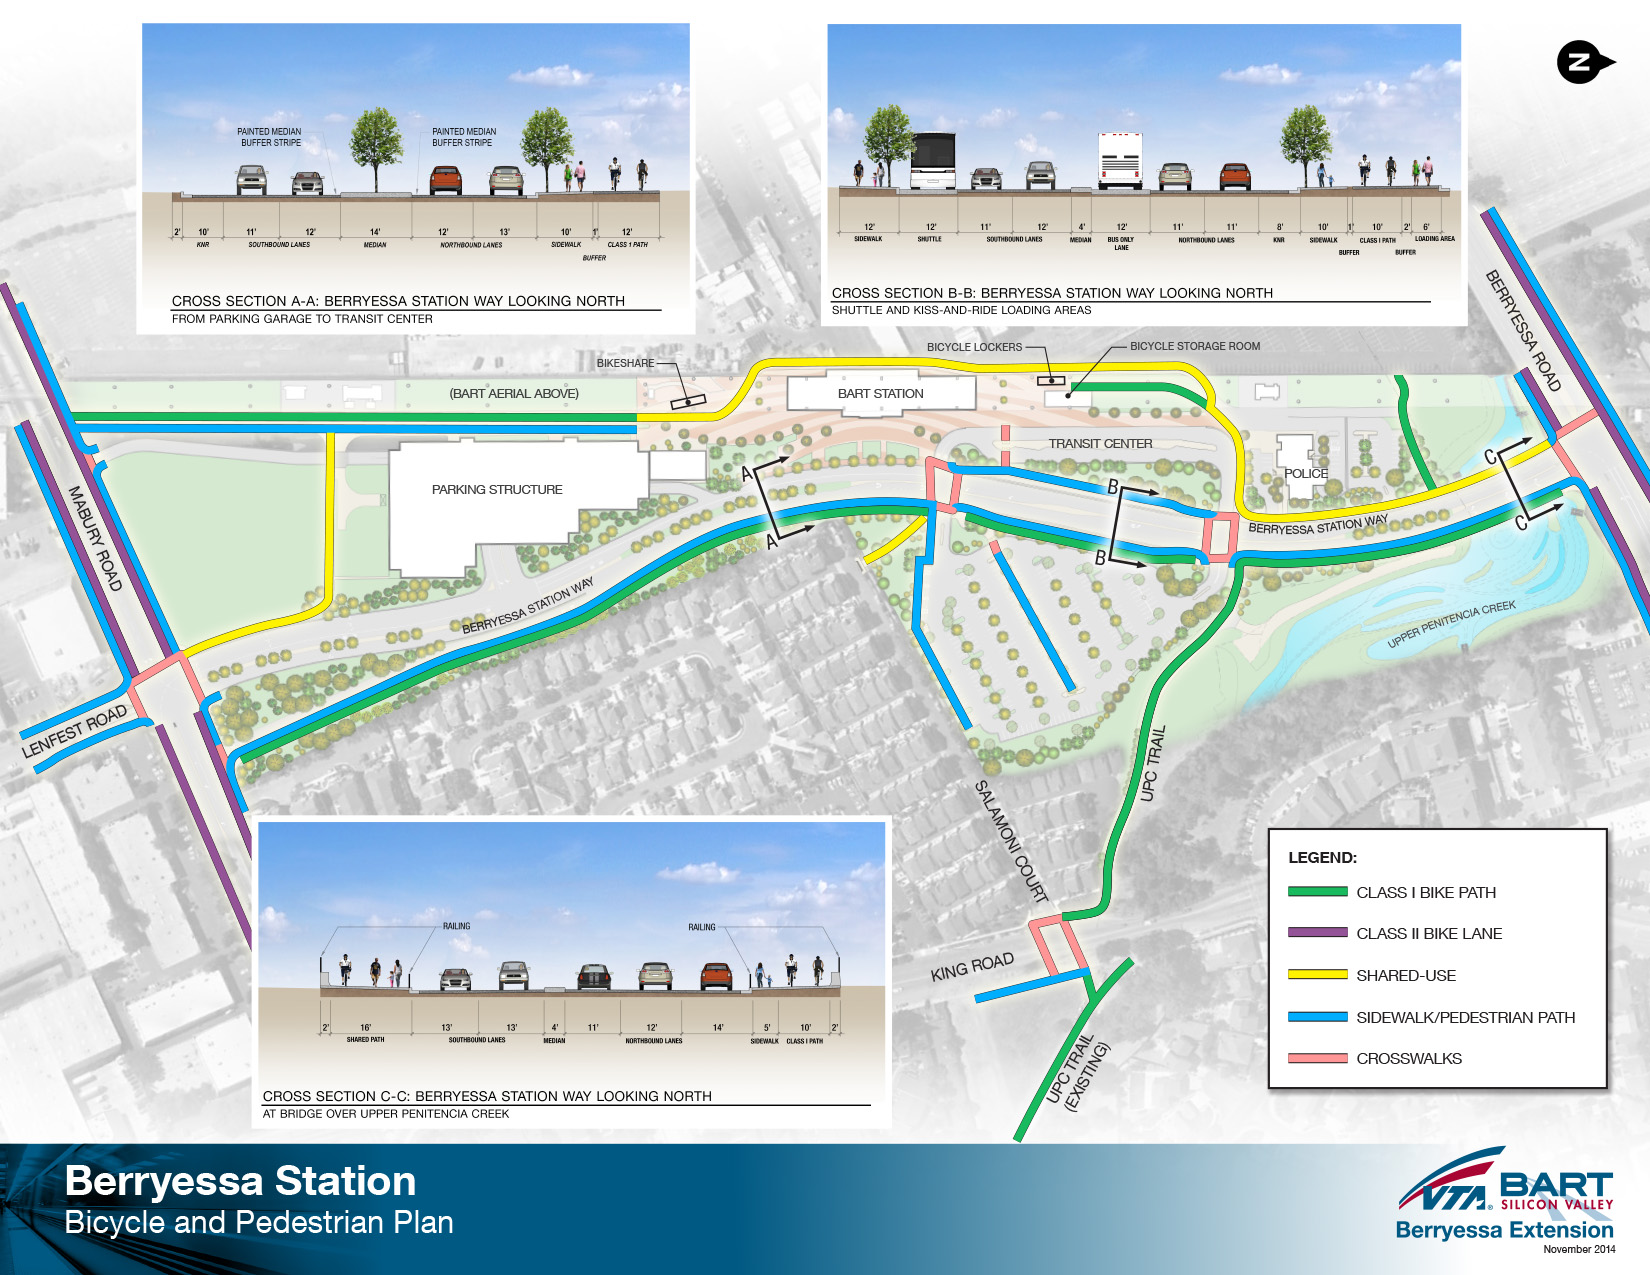 Berryessa BART Station bike and pedestrian access diagram